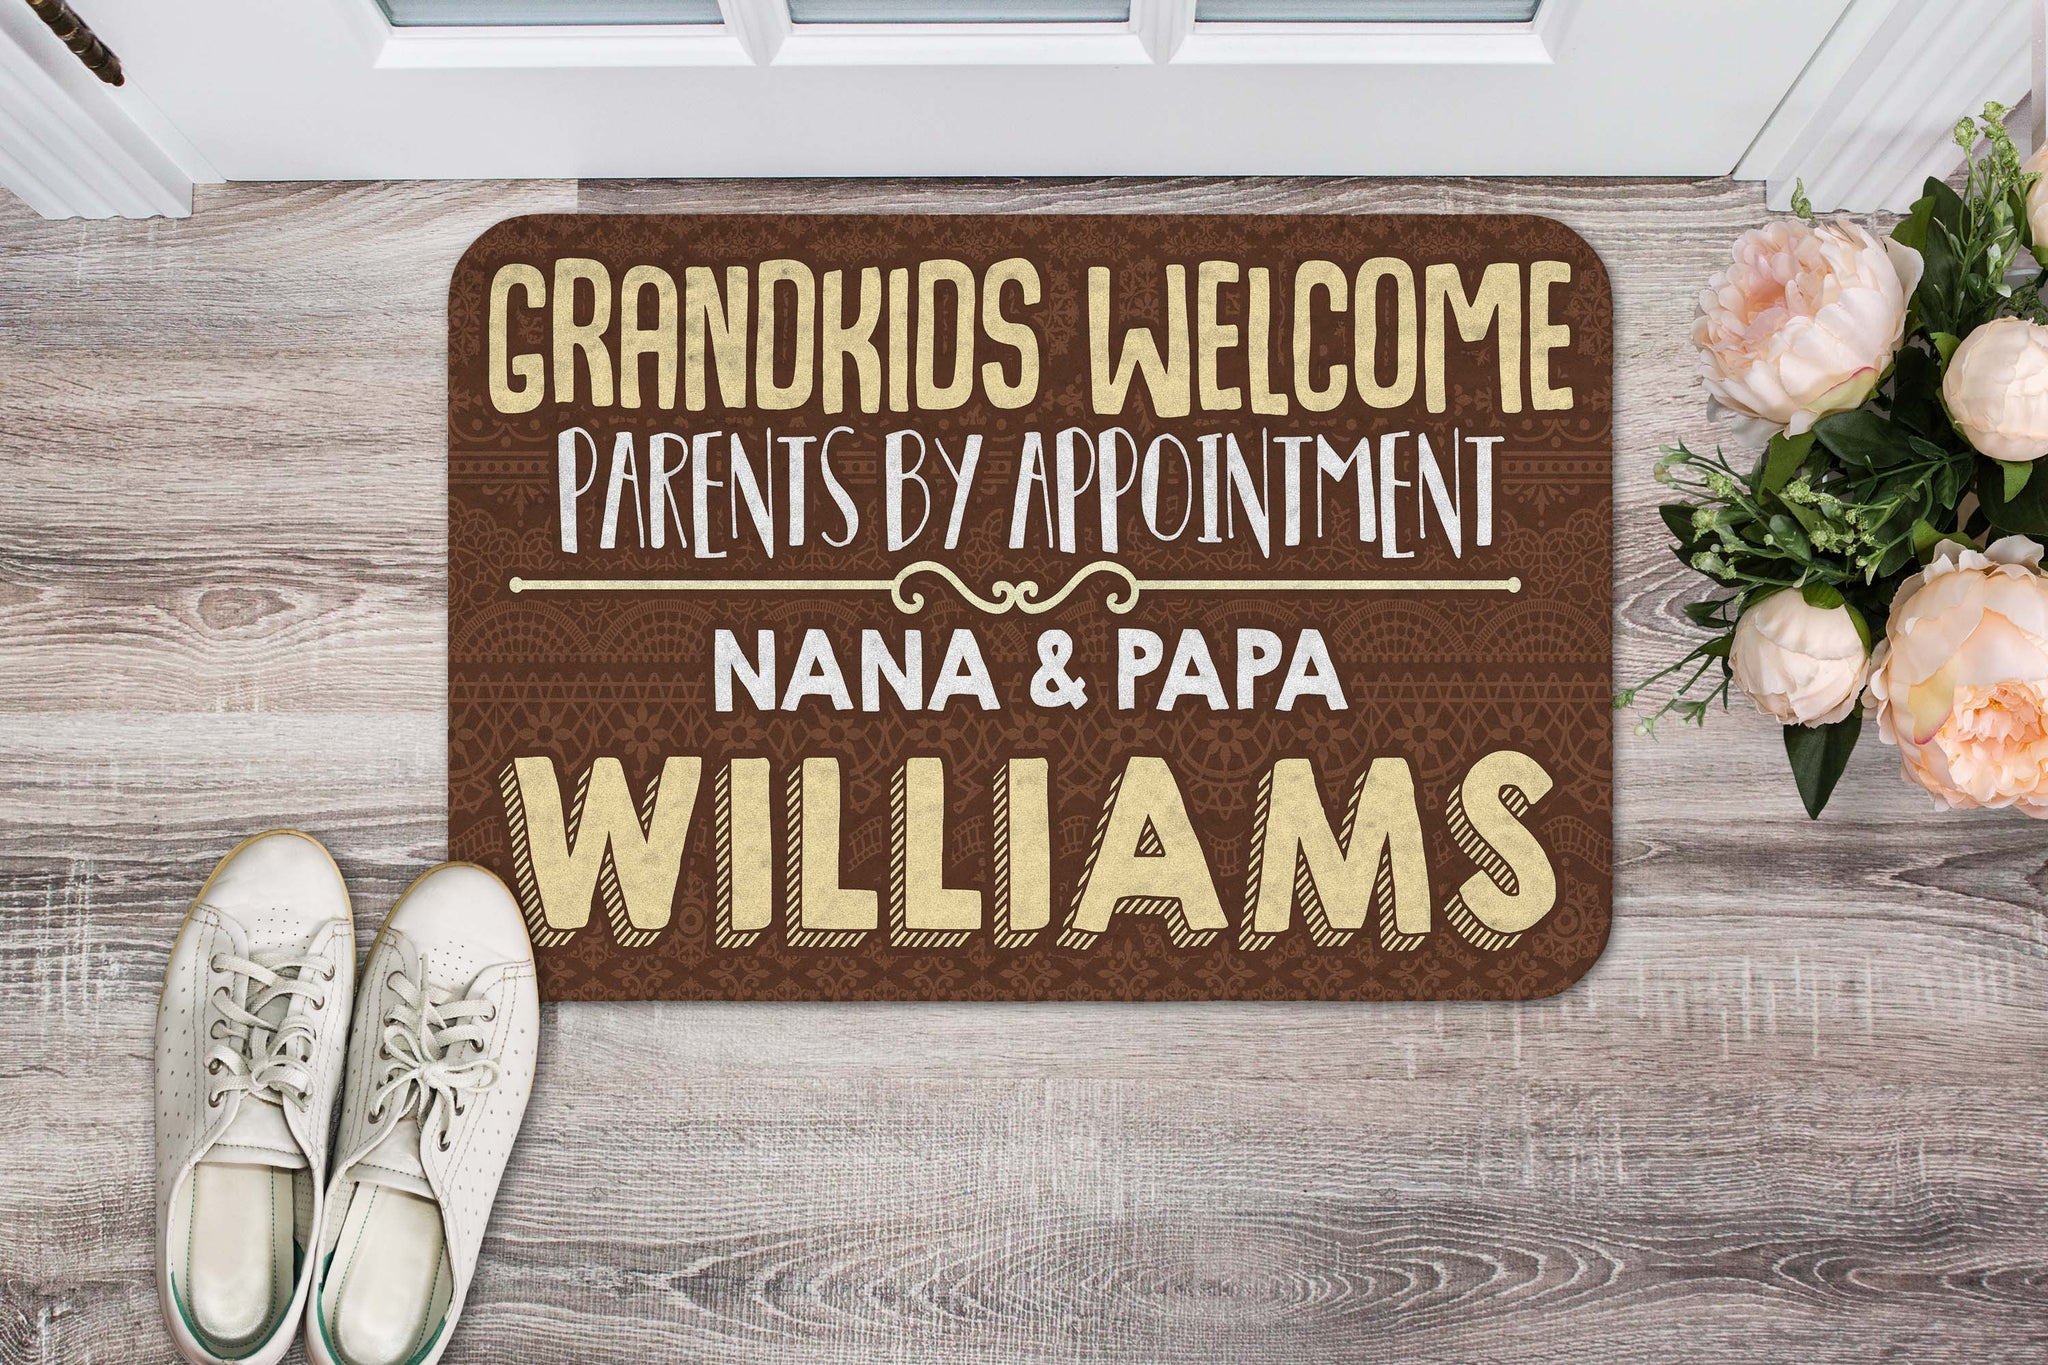 Personalized Grandkids Welcome - Parents by Appointment Door Mat